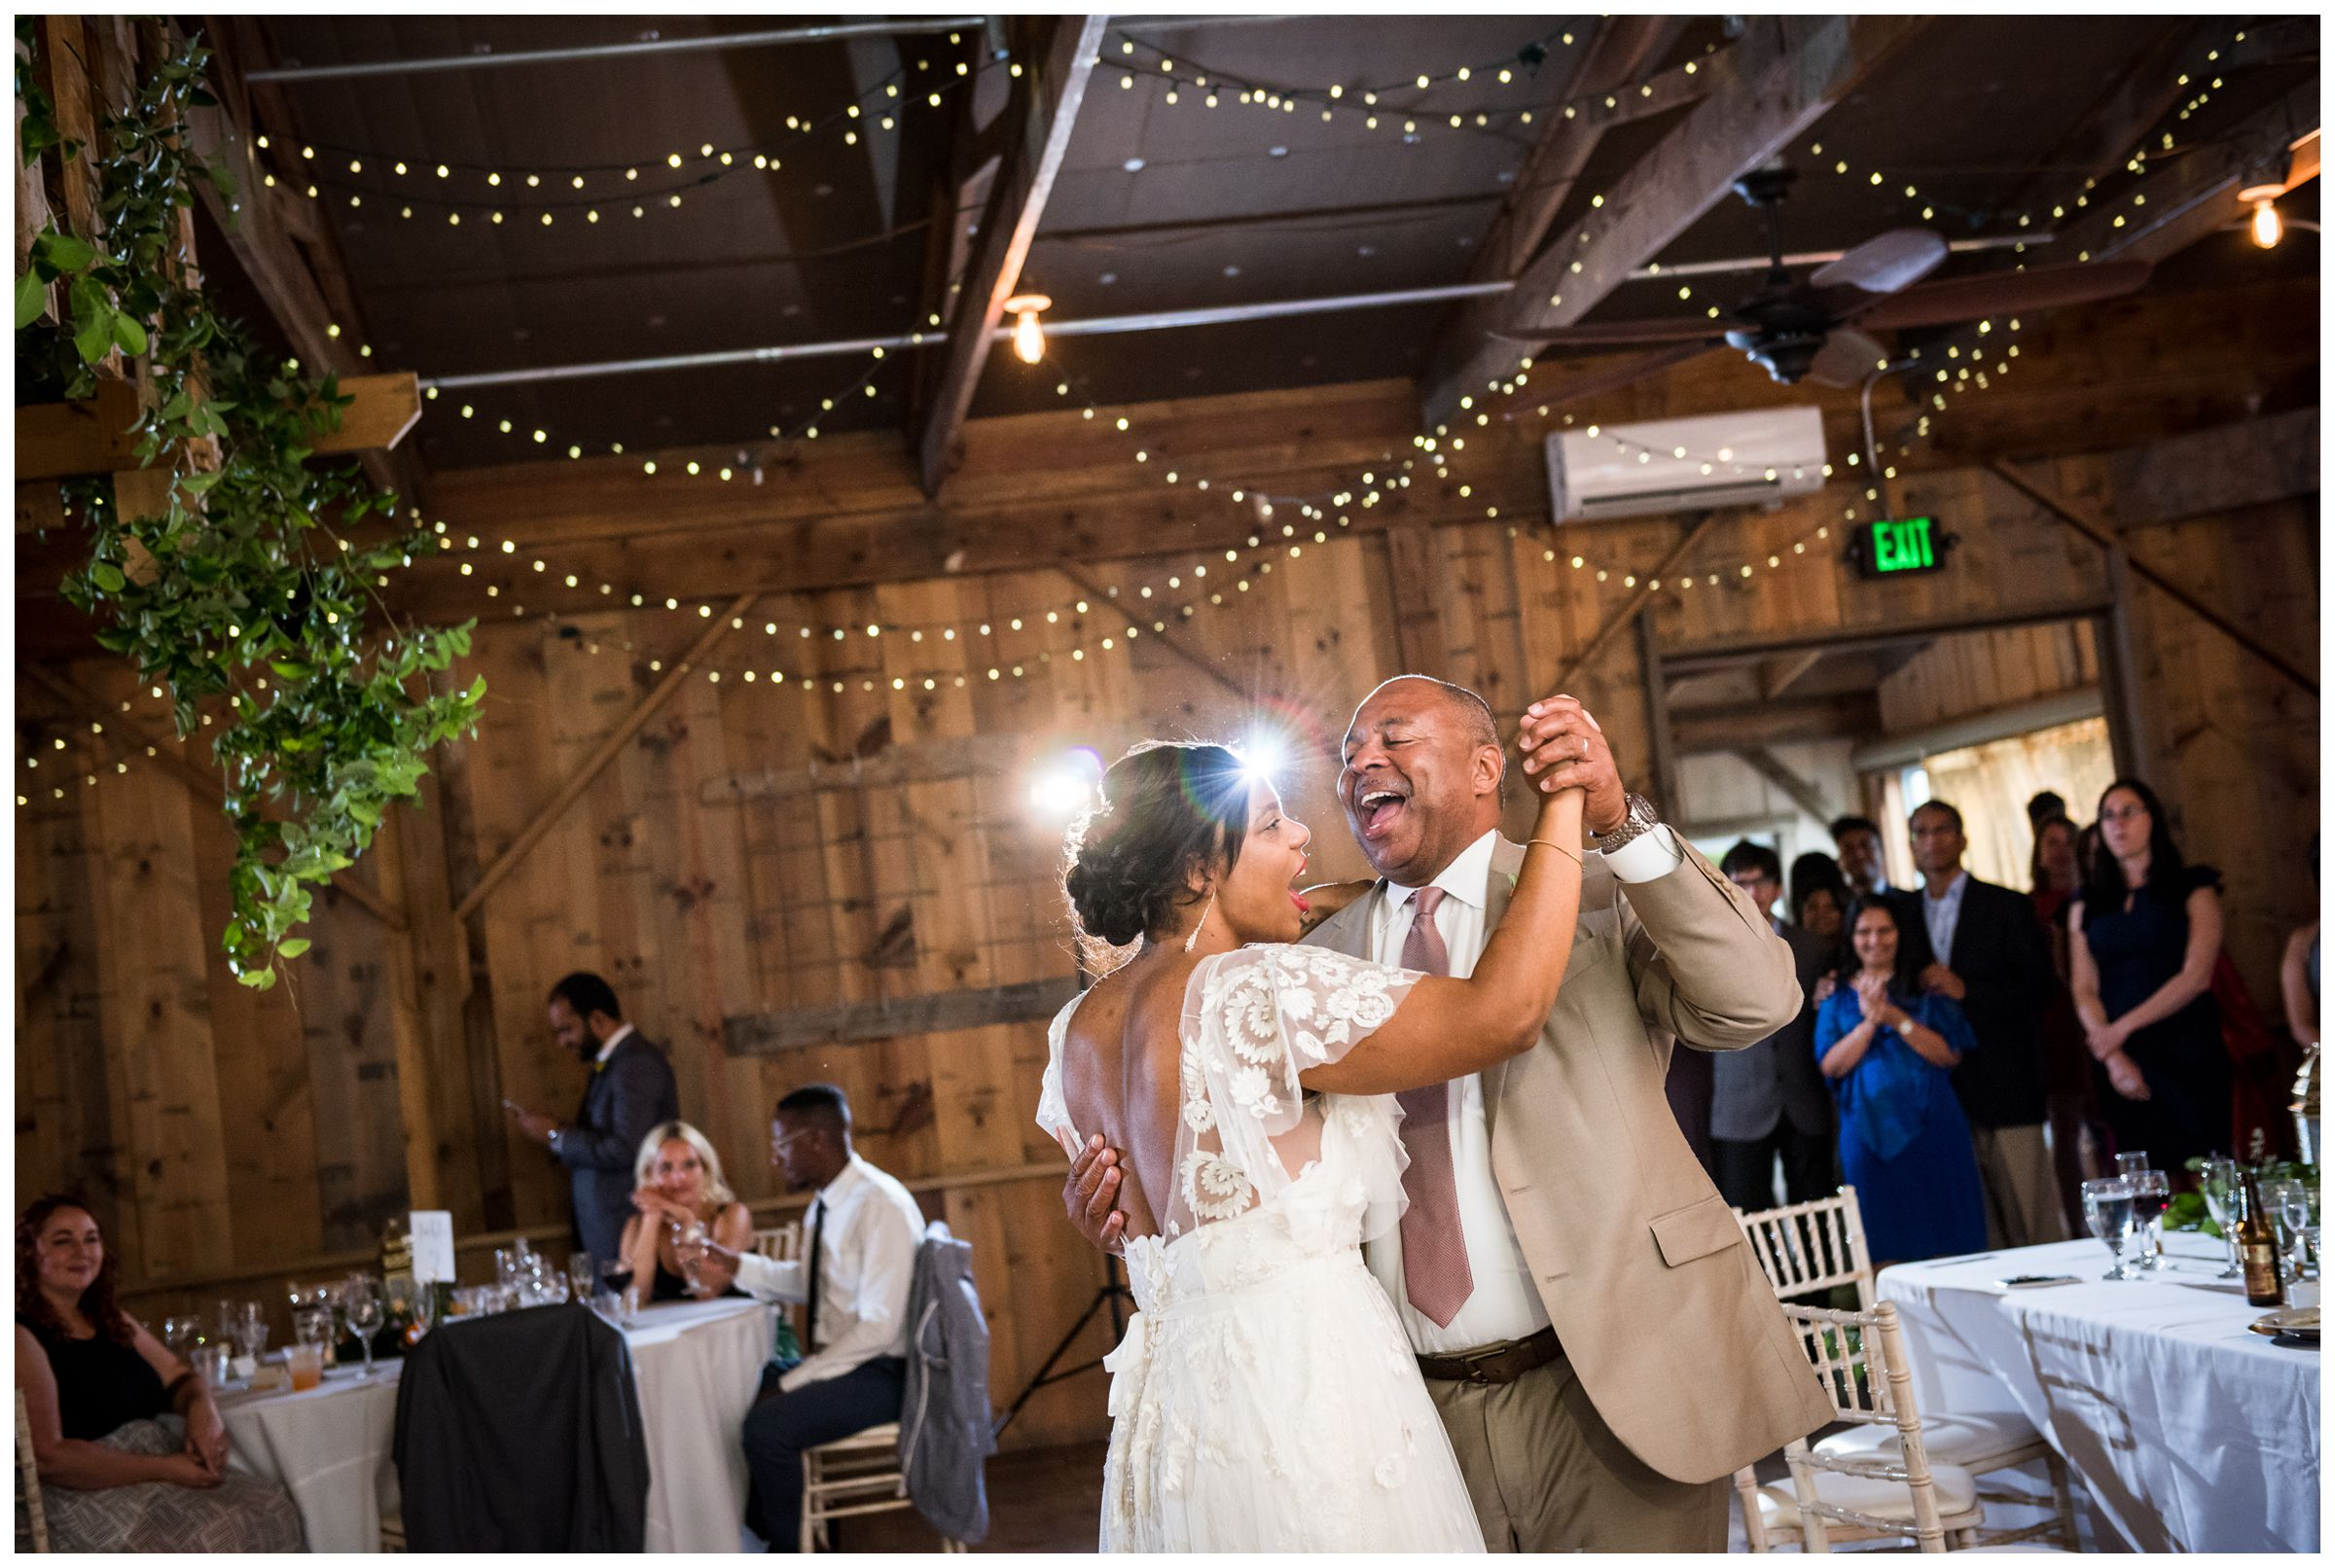 father daughter dance during rustic wedding reception at historic barn